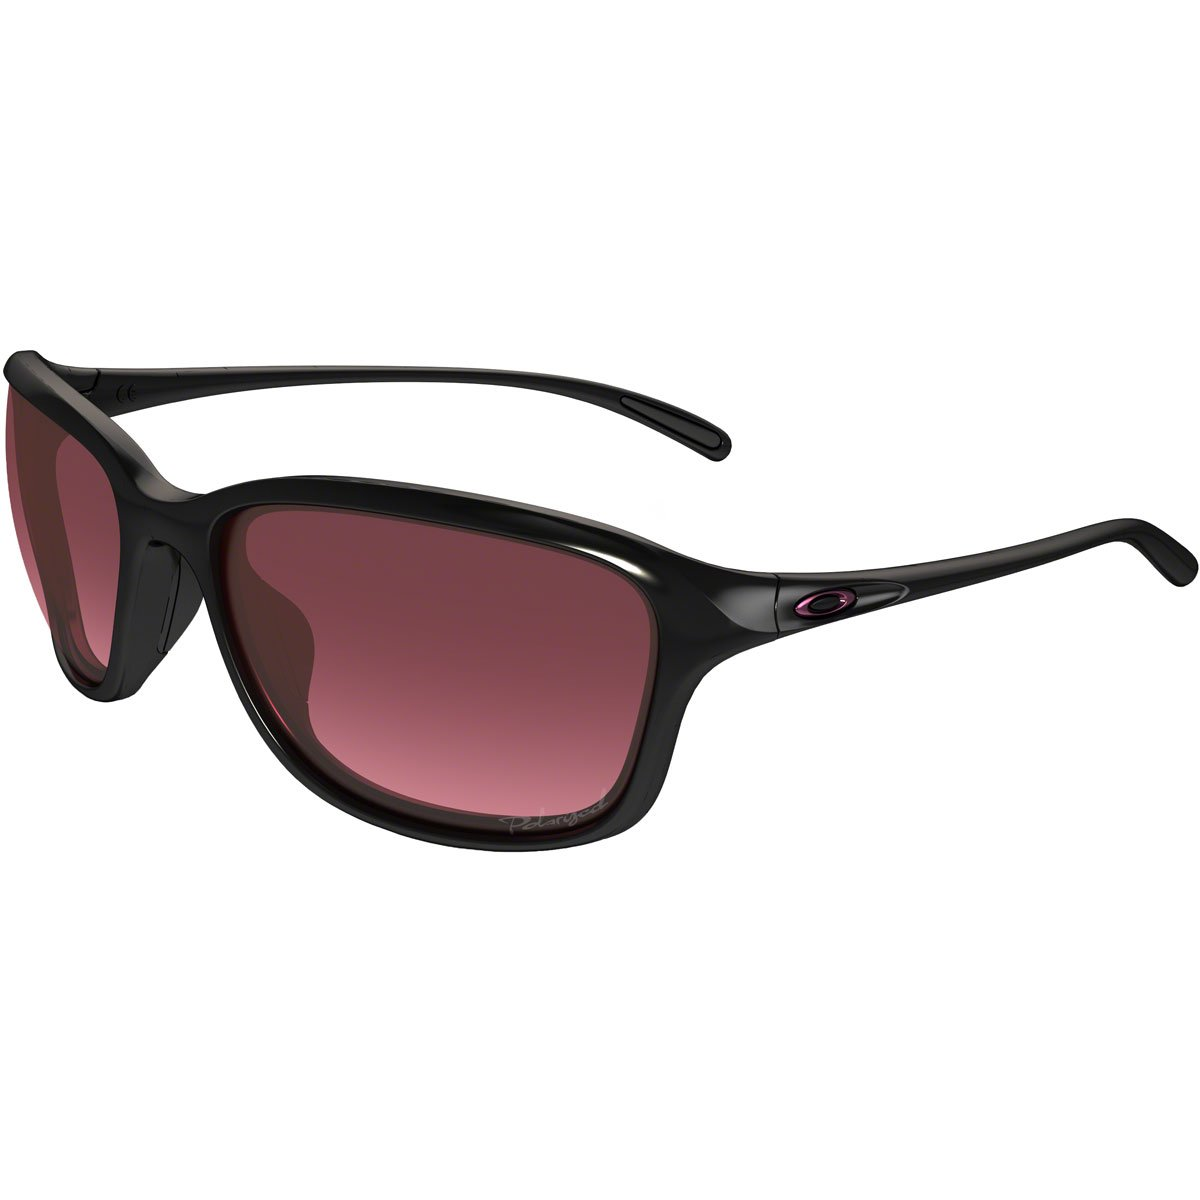 Oakley Womens Unstoppable Sunglasses Black/Rose by Oakley